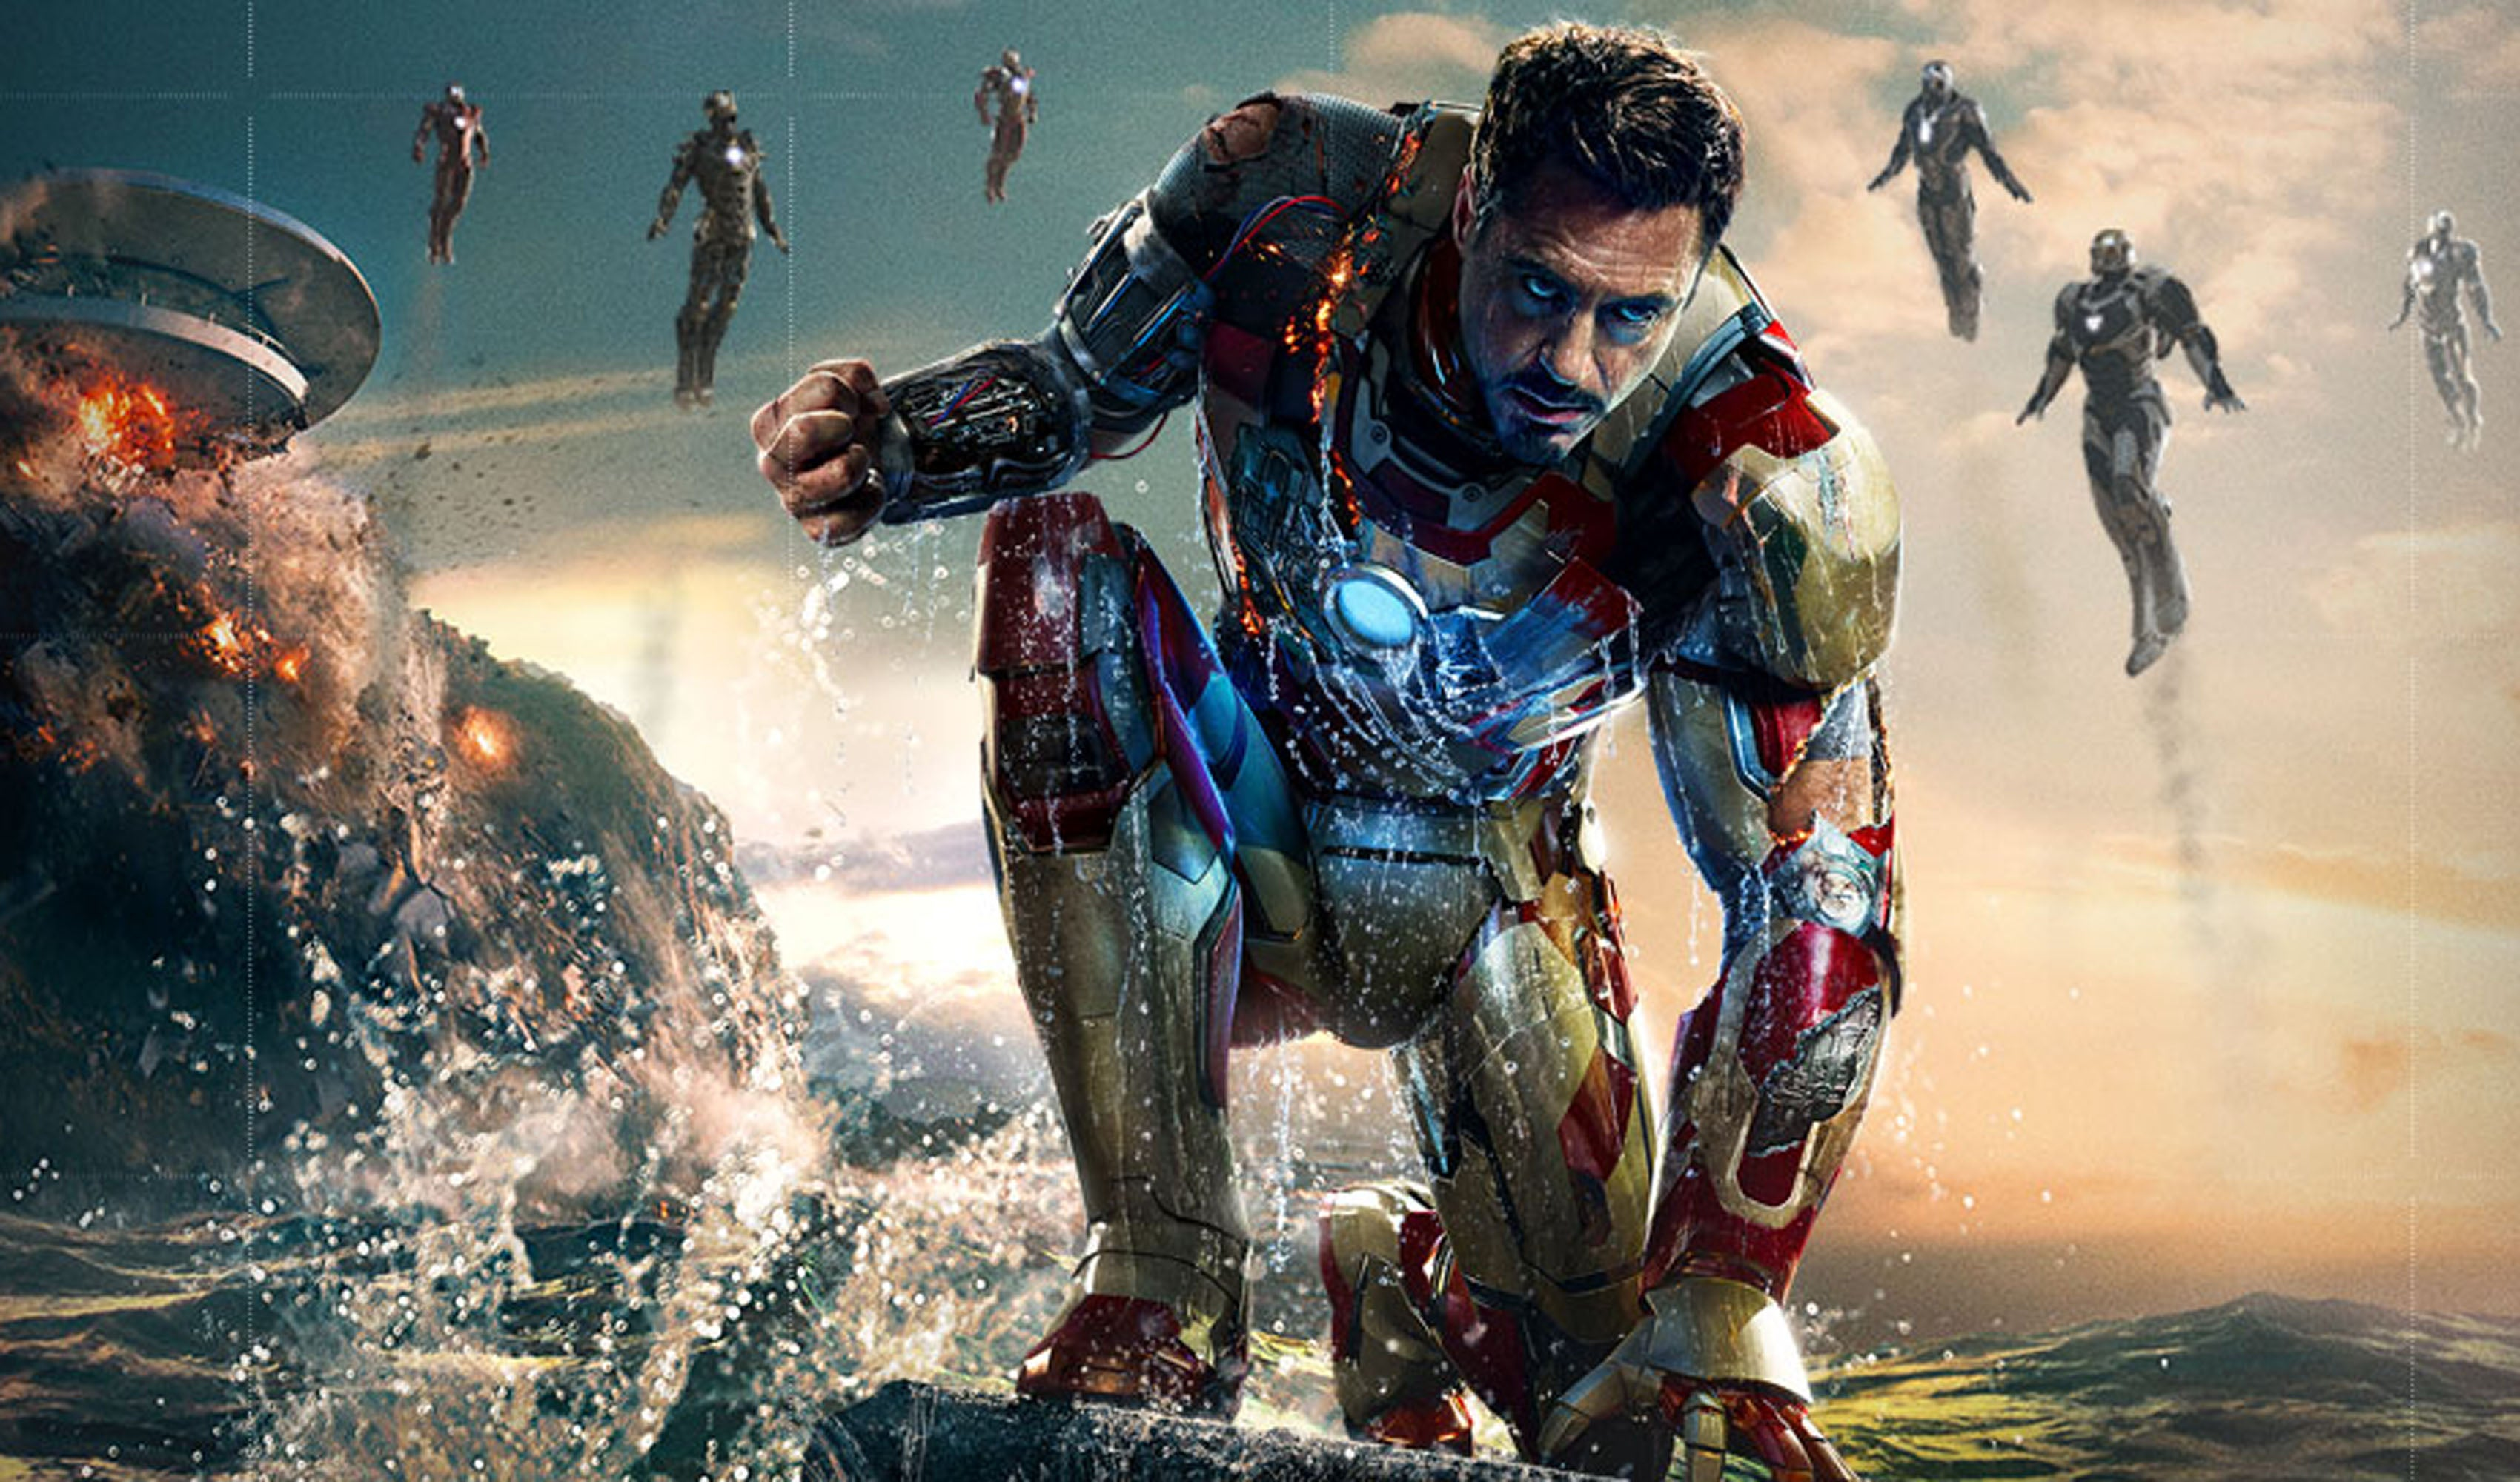 Avengers: Infinity War could be the most expensive film ever